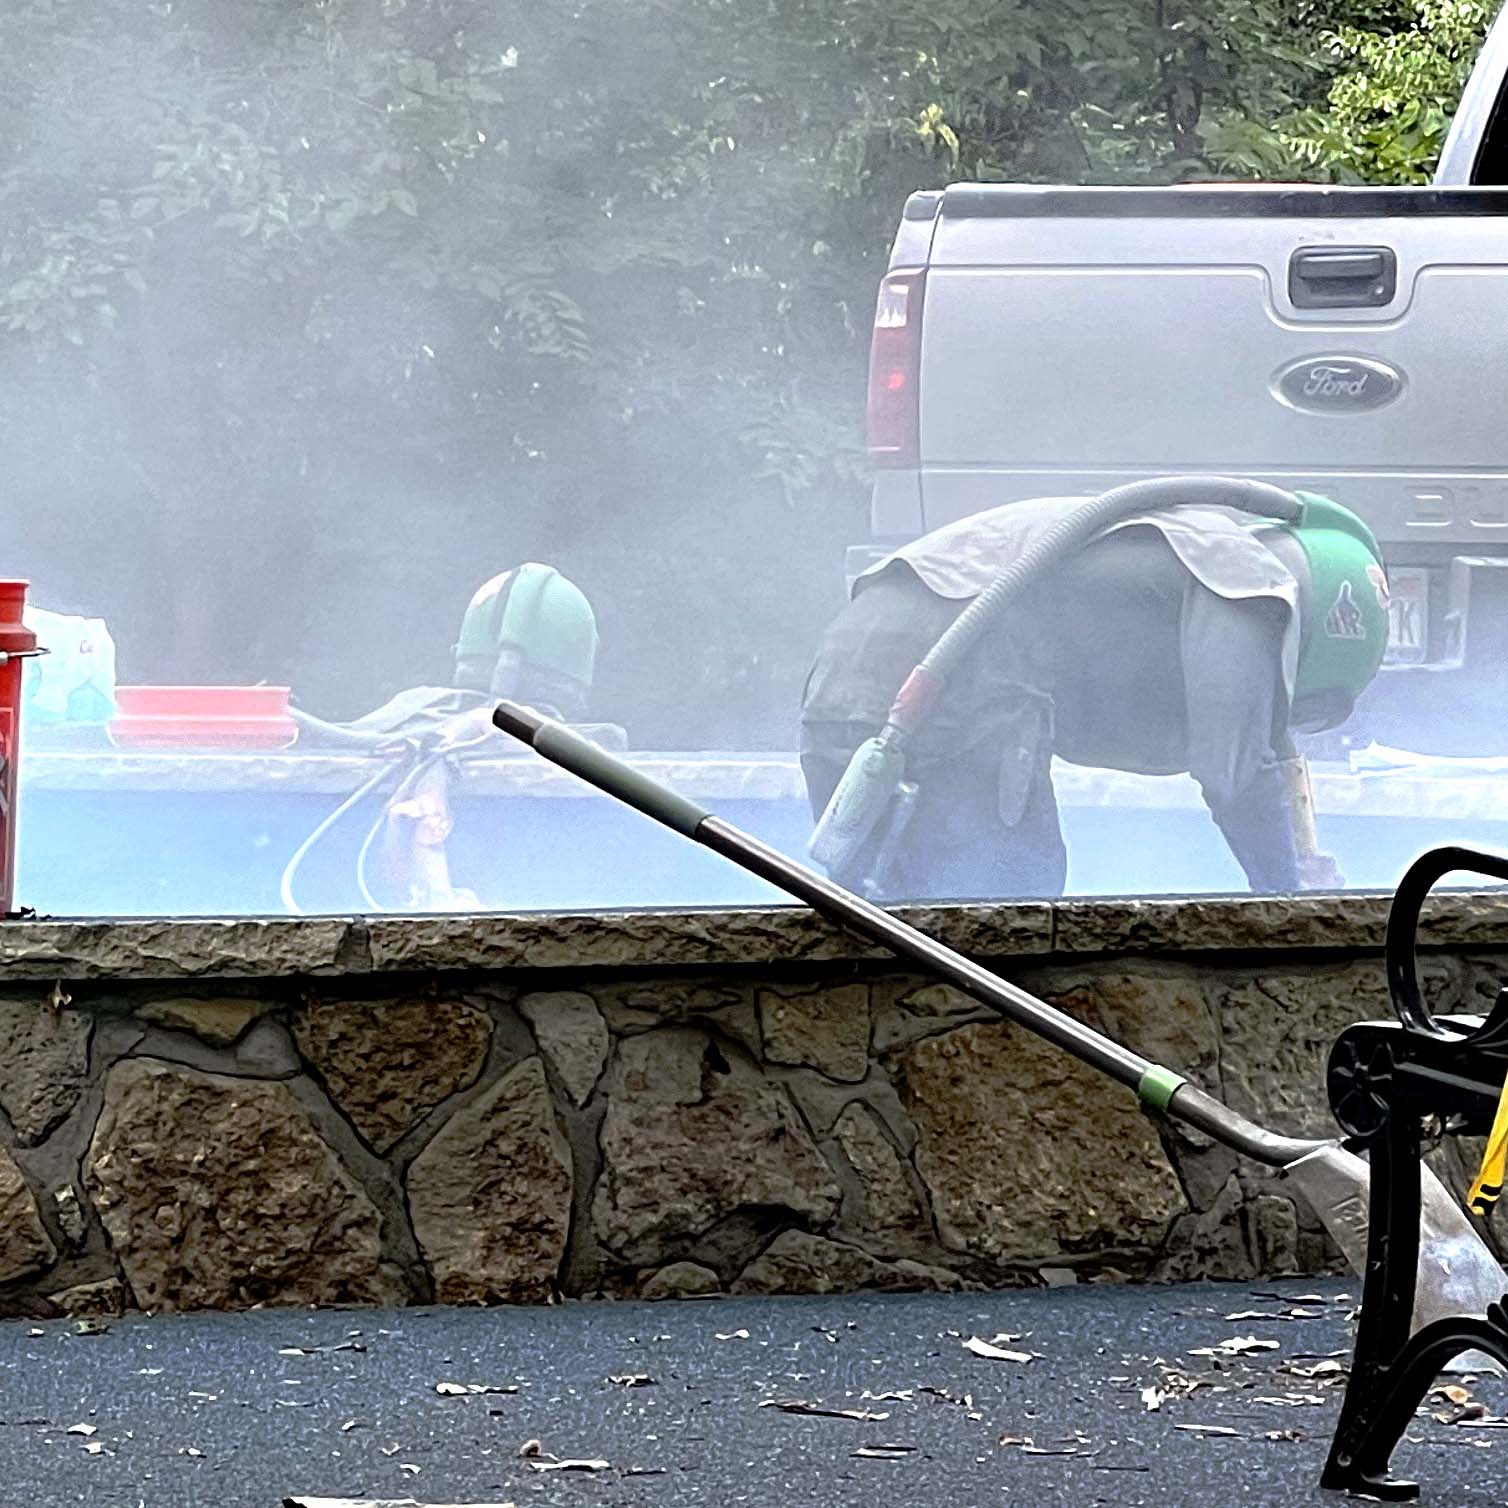 Evan Just, left, and Kathy Richter, center, hold sale items as Roger Hiebert, right, conducts an auction Saturday at Aulne United Methodist Church. The auction raised more than $10,000 for charity.